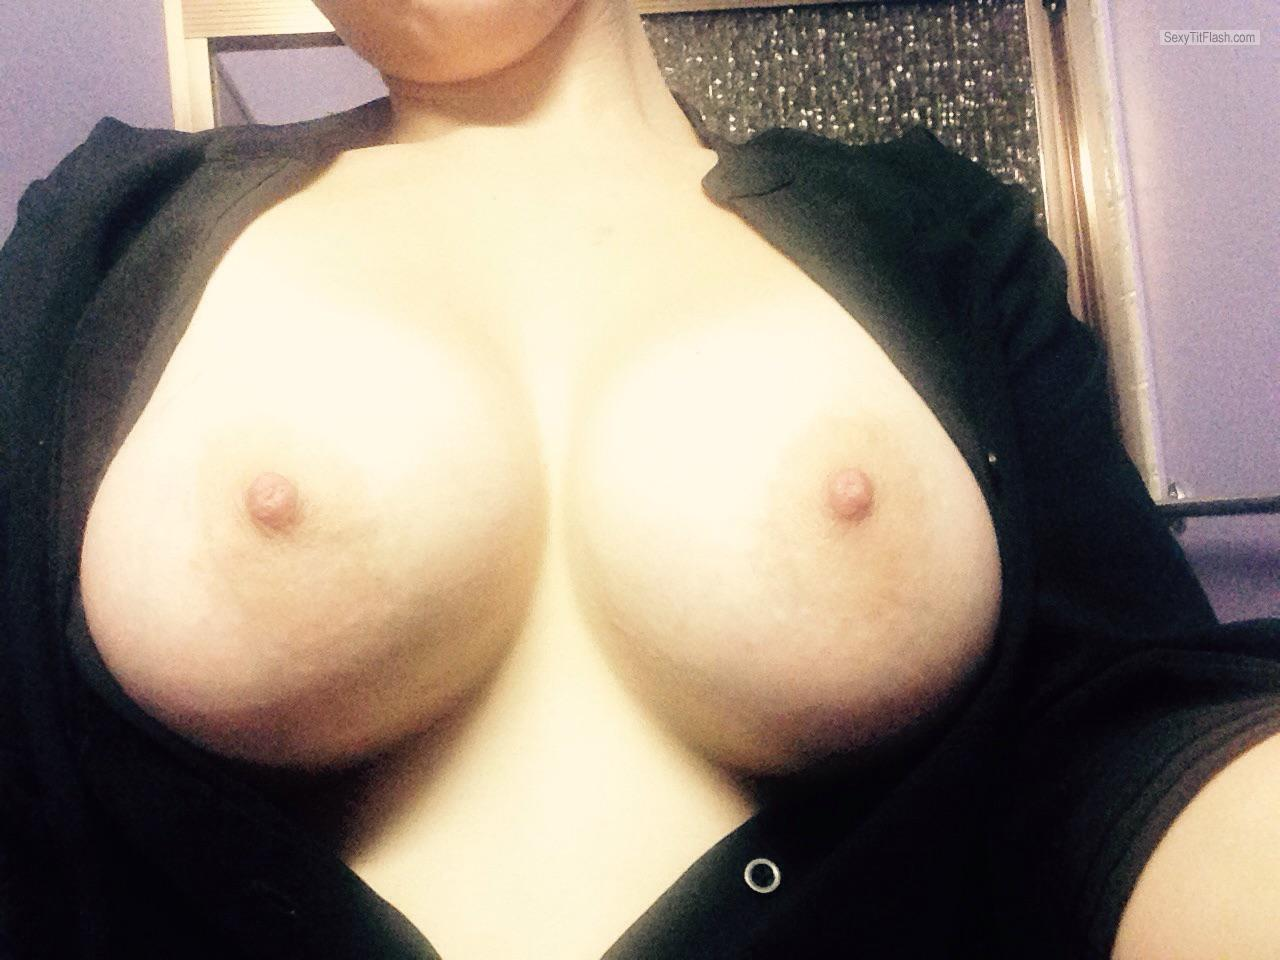 Tit Flash: My Big Tits - Anon ;-) from Australia